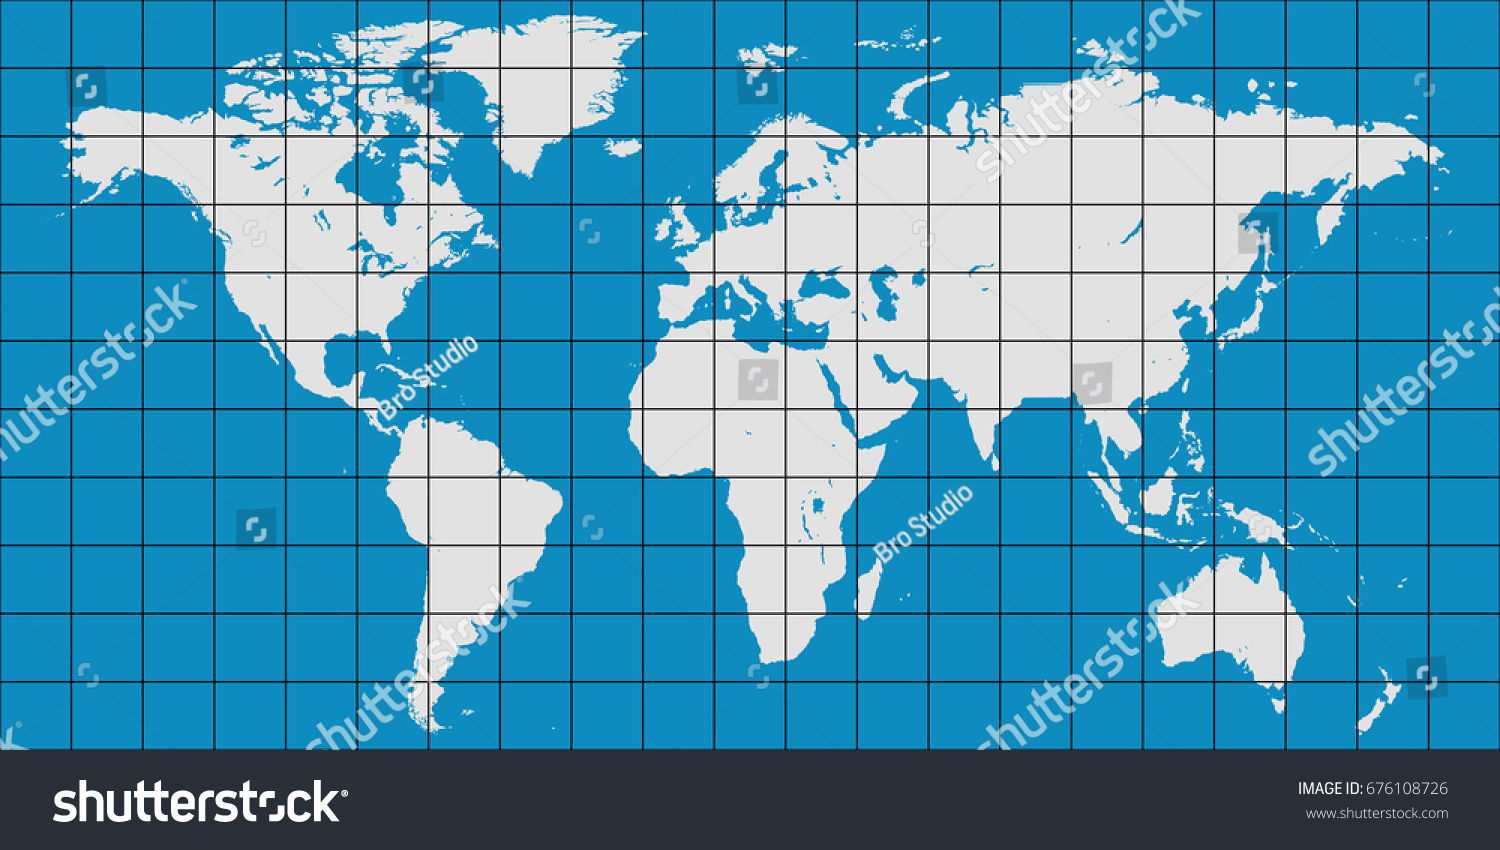 World map coordinate grid meridian parallel vector de stock676108726 world map with coordinate grid and meridian and parallel vector map of planet earth gumiabroncs Choice Image